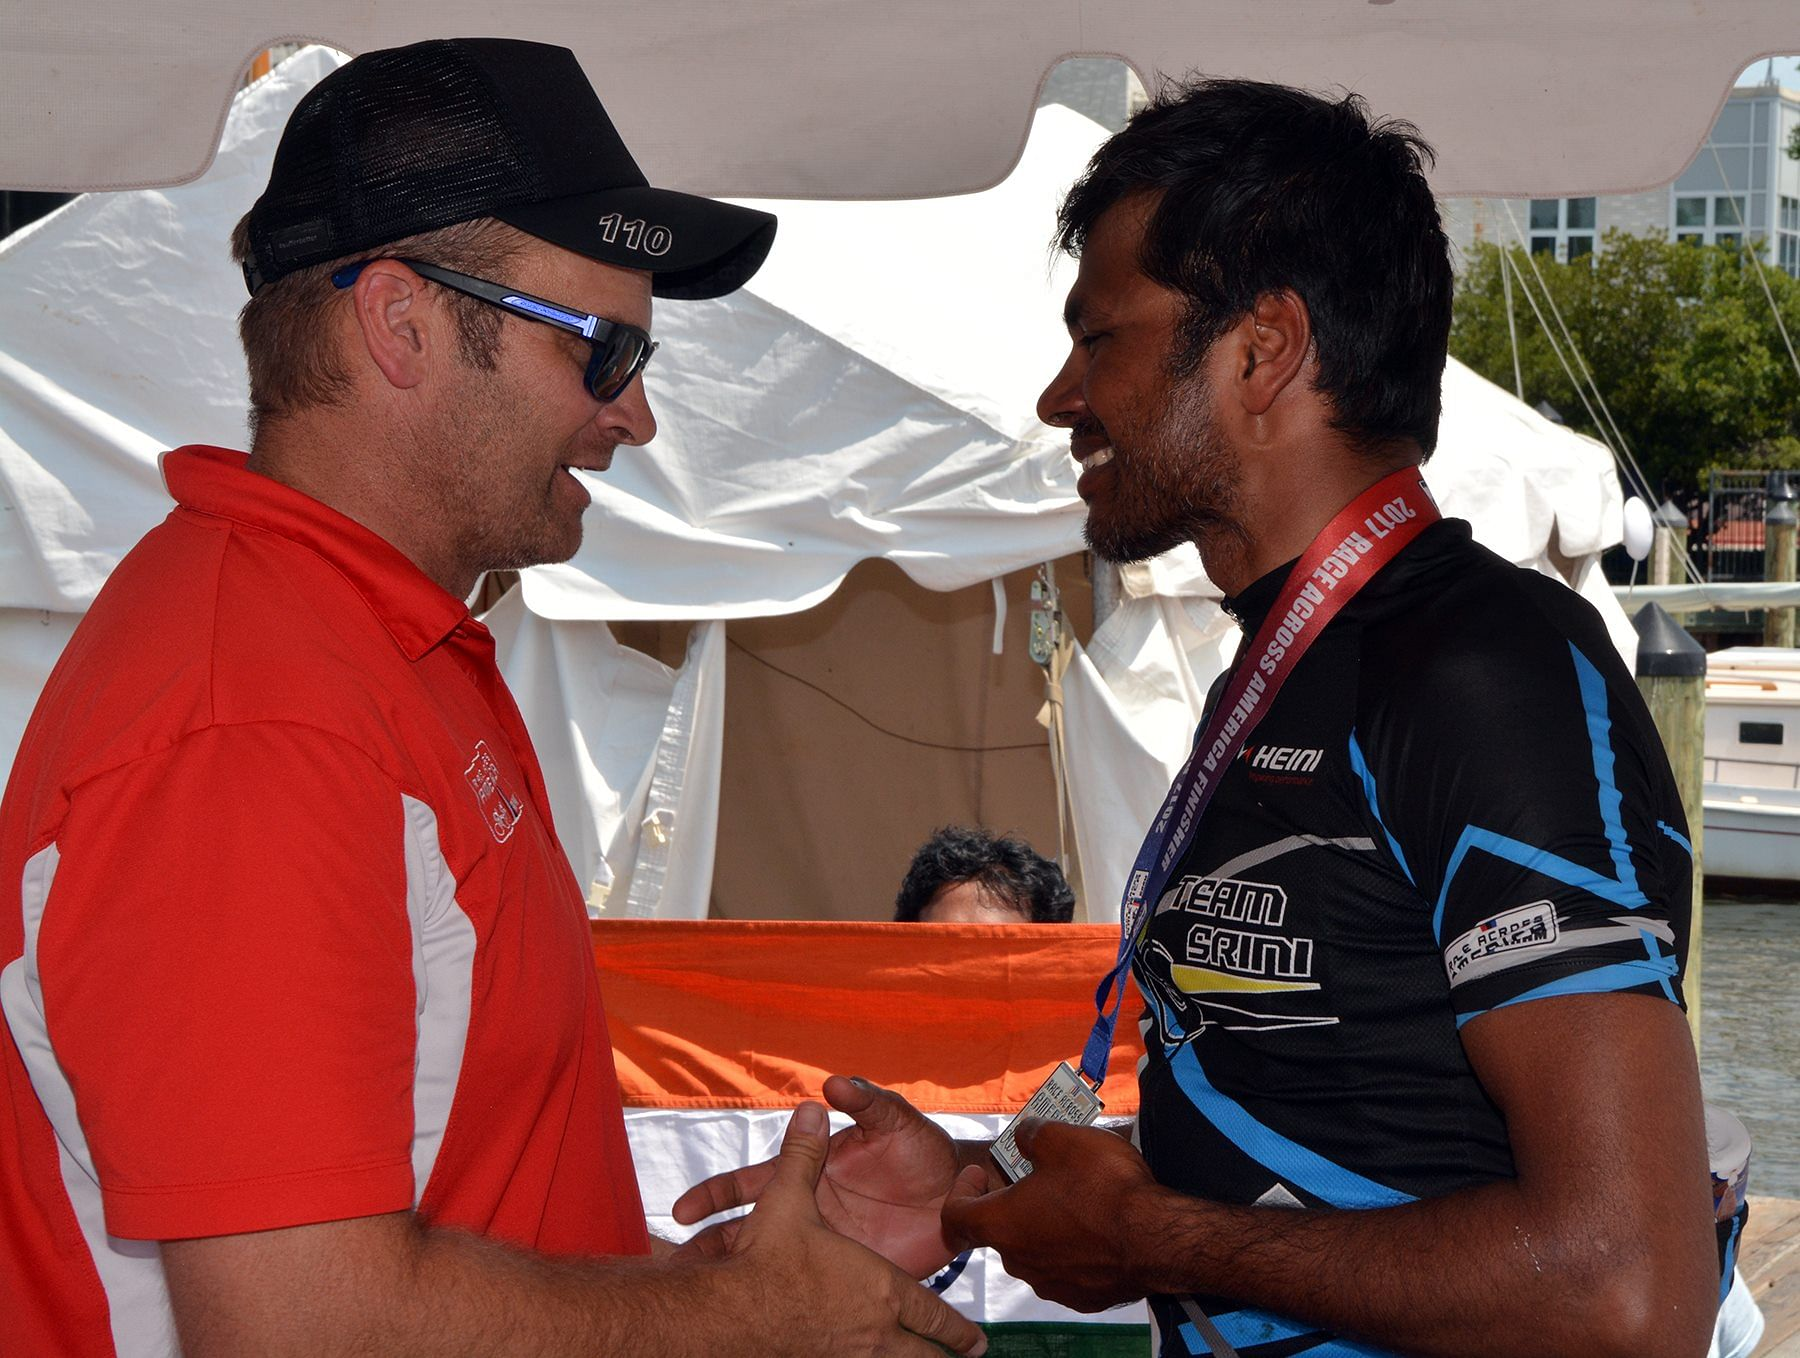 srinivas-gokulnath-Race across- America-